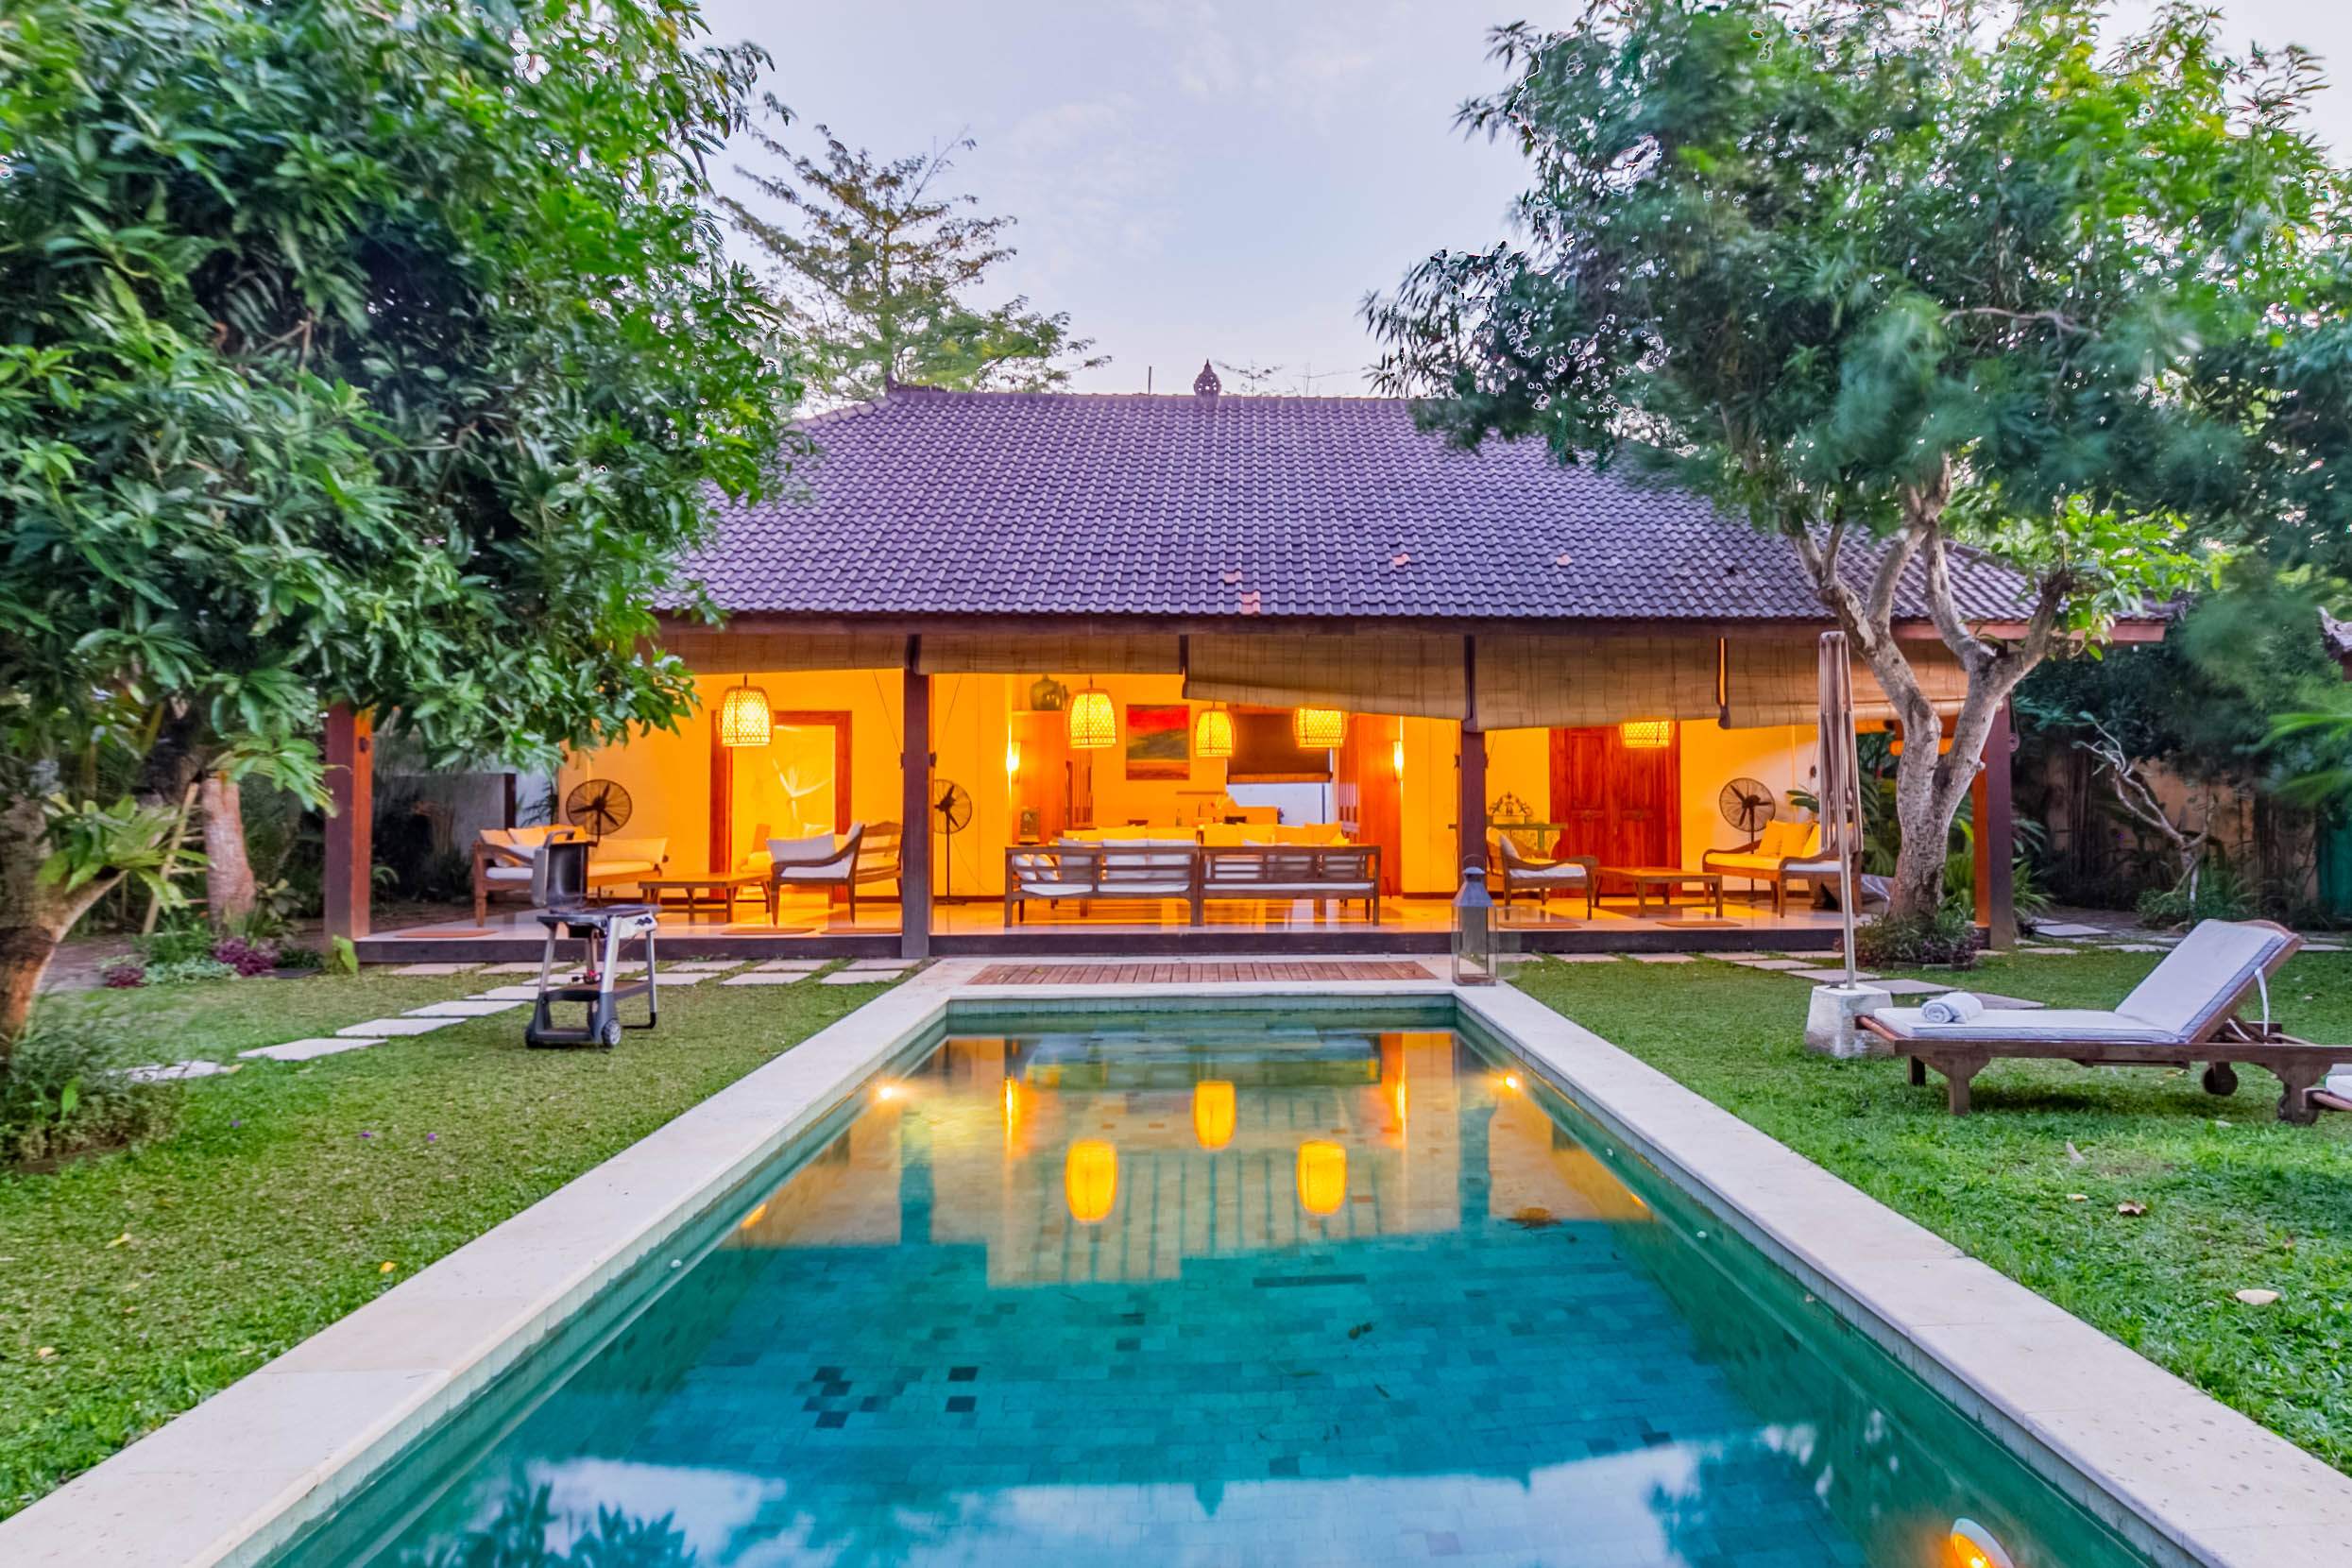 Surf Town Villa With Balinese Charm Villas For Rent In South Kuta Bali Indonesia